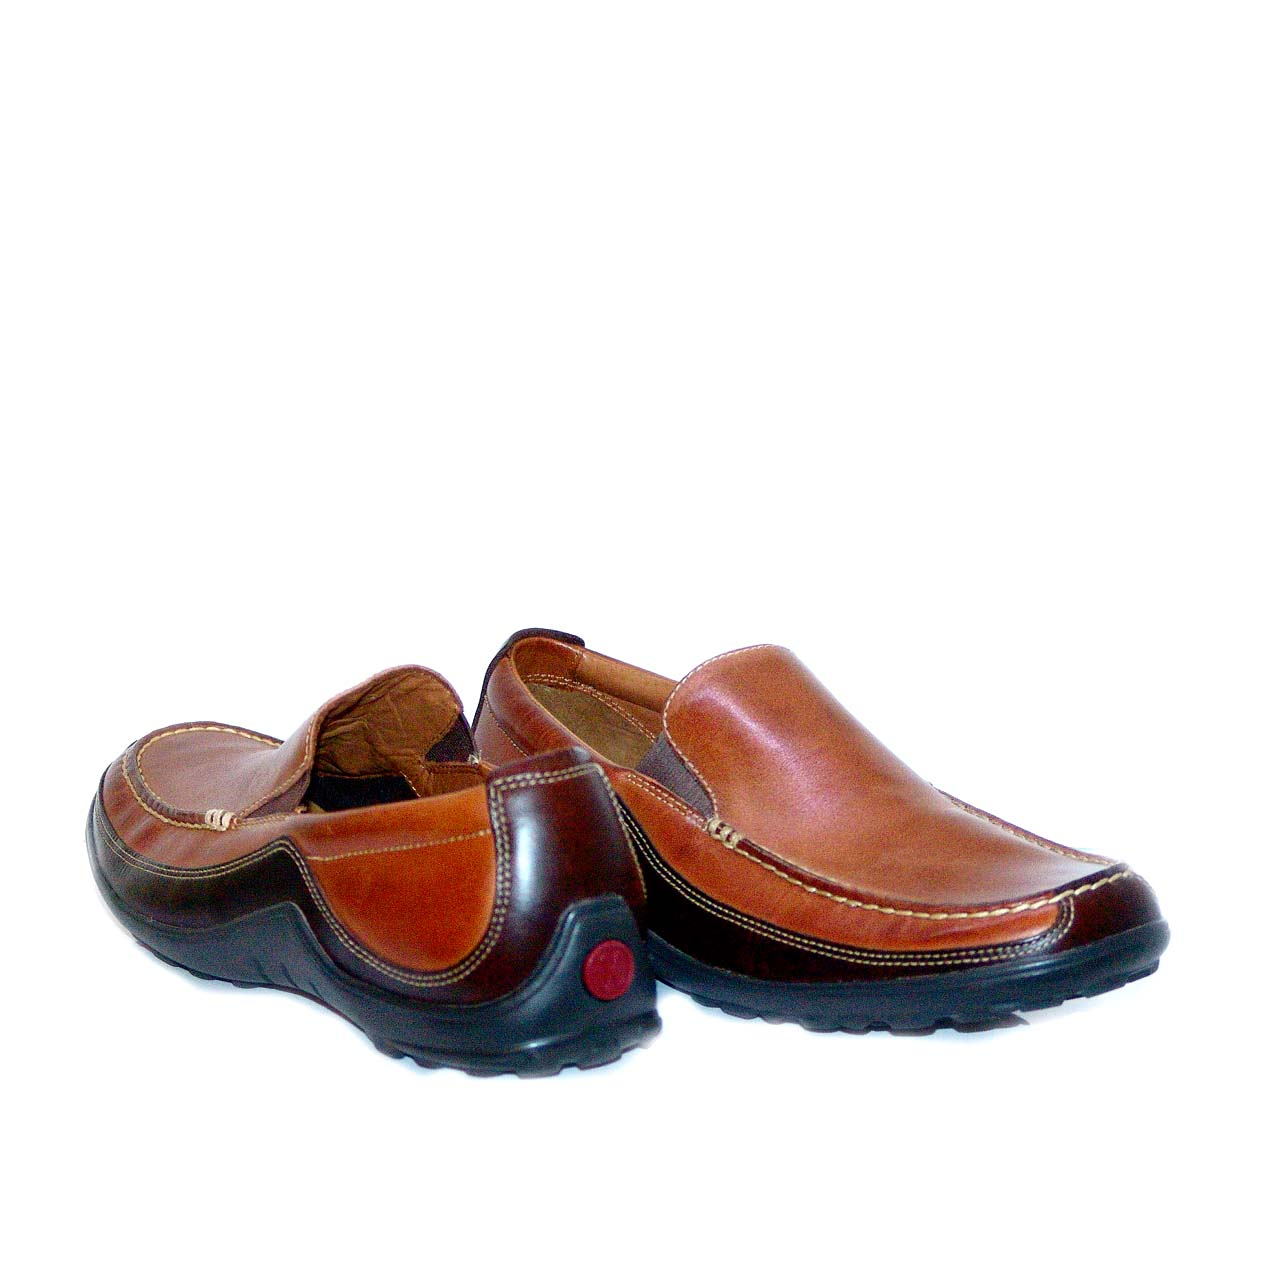 Cole Haan Comfort Sole Loafer 3559 Tan